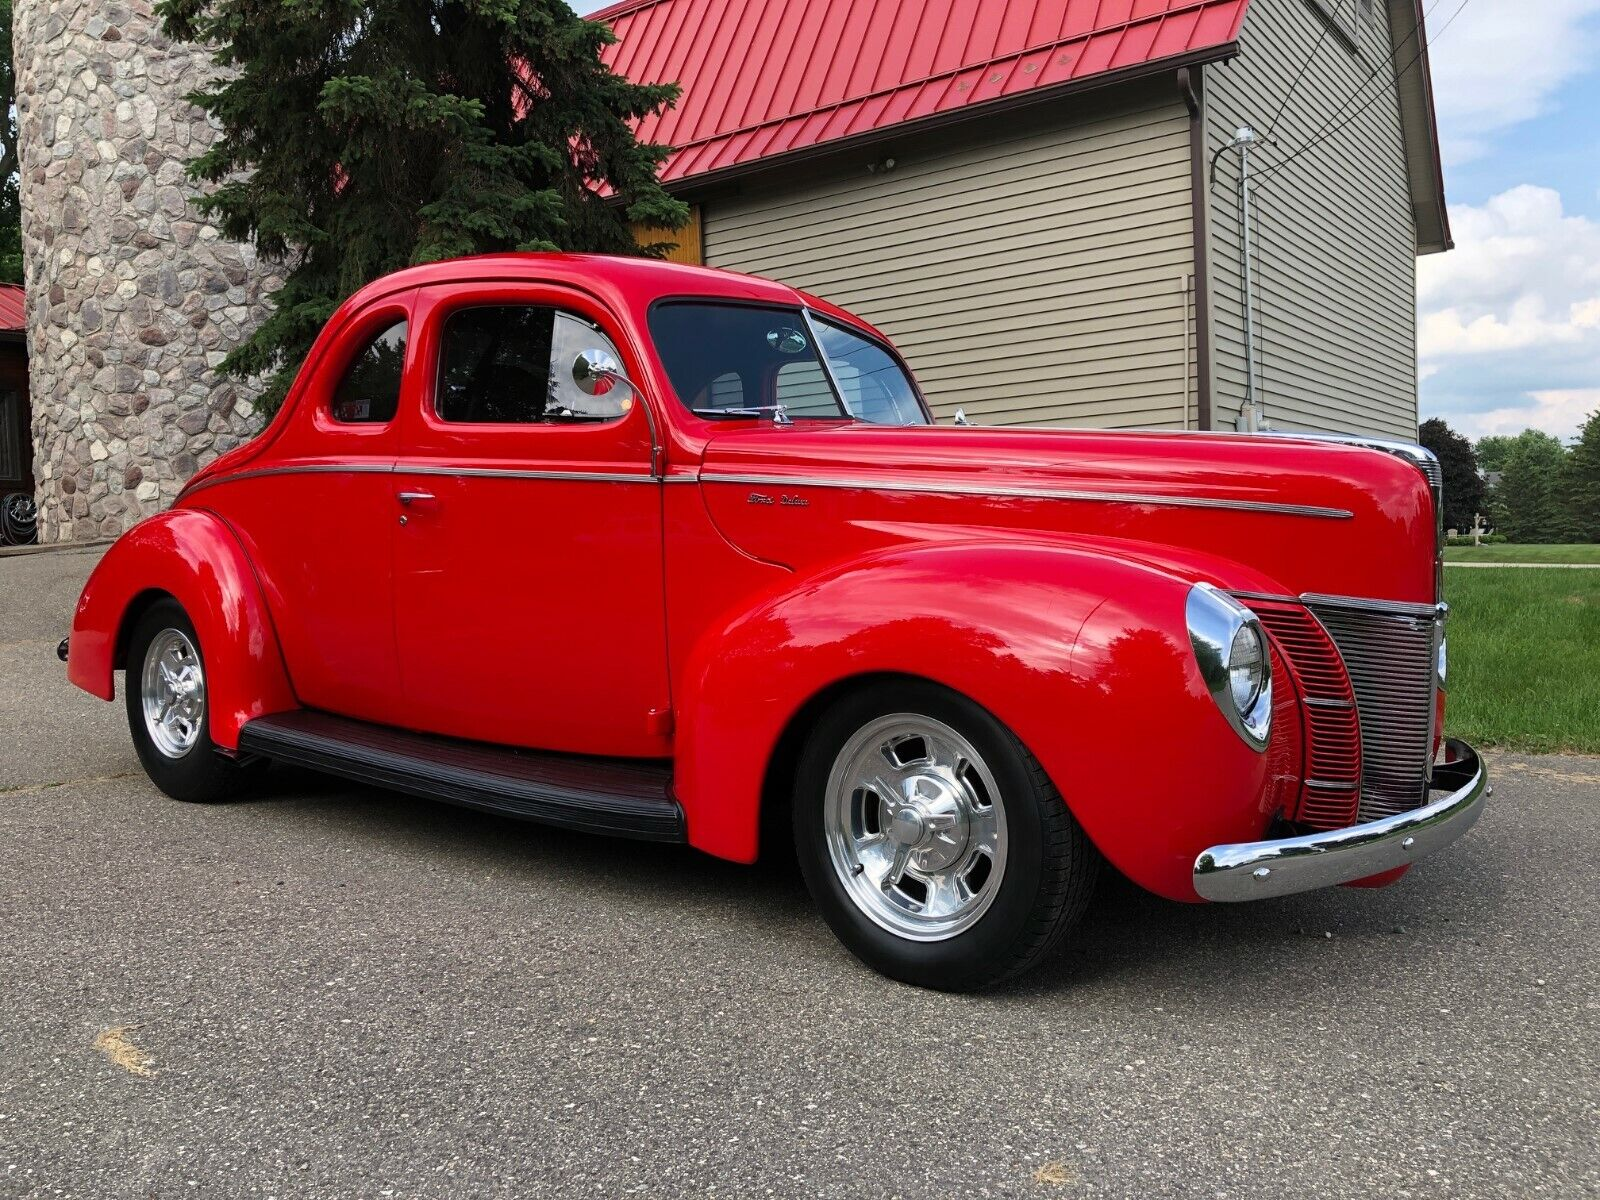 1940 Ford Deluxe Coupe Deluxe Coupe 1940 Ford Deluxe Coupe -True High-Quality Show and Drive